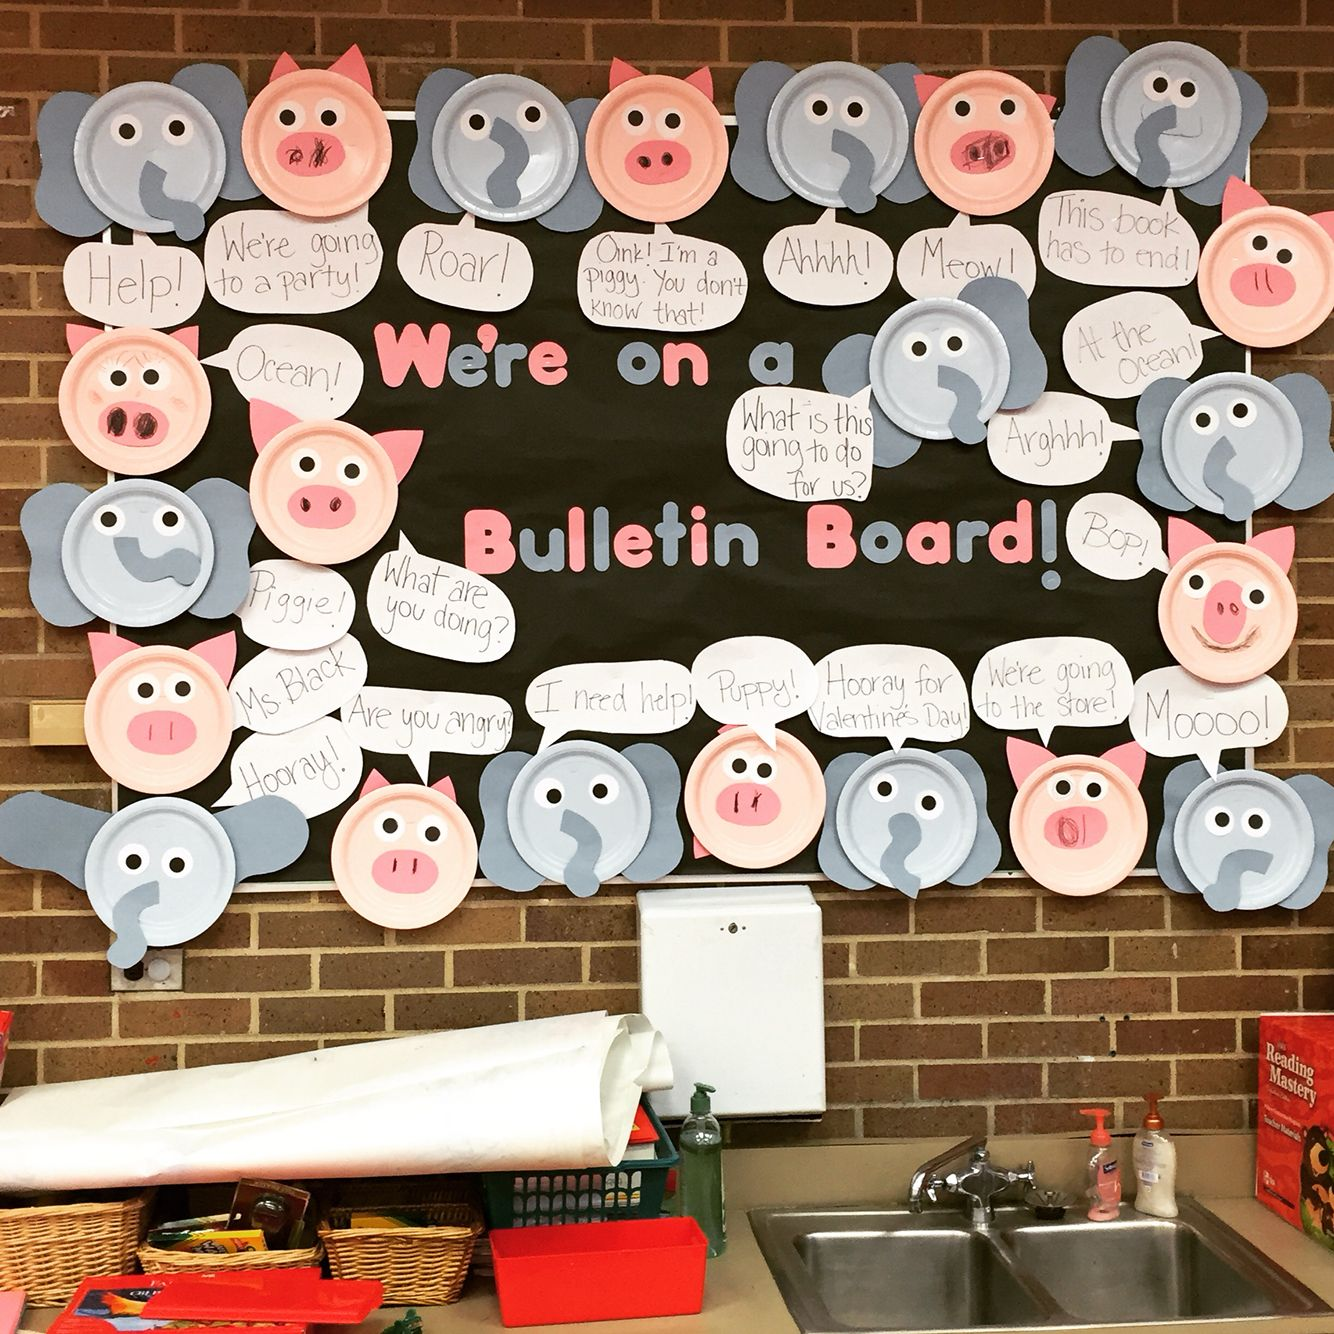 Elephant And Piggie Bulletin Boards Kids Make Using Paper Plates Pape Mo Willems Author Study Classroom Activities